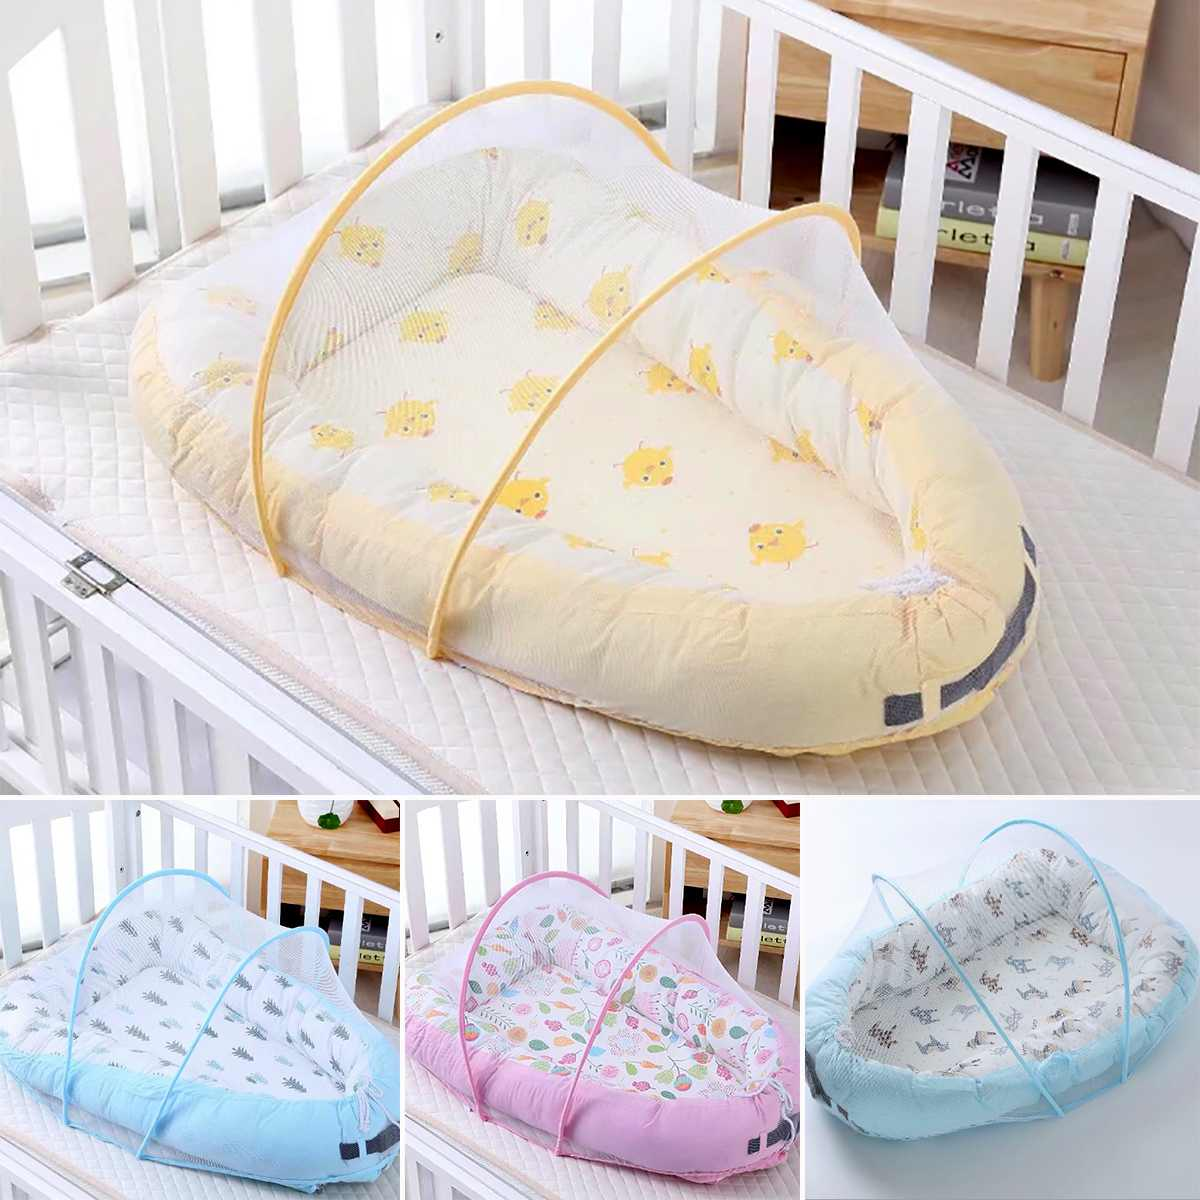 Baby Bassinet Linen Us 36 95 43 Off Baby Alcofa Nest Bed Portable Crib Travel Bed Infant Toddler Cotton Cradle Protable Carrycot For Newborn Baby Bassinet Bumper In